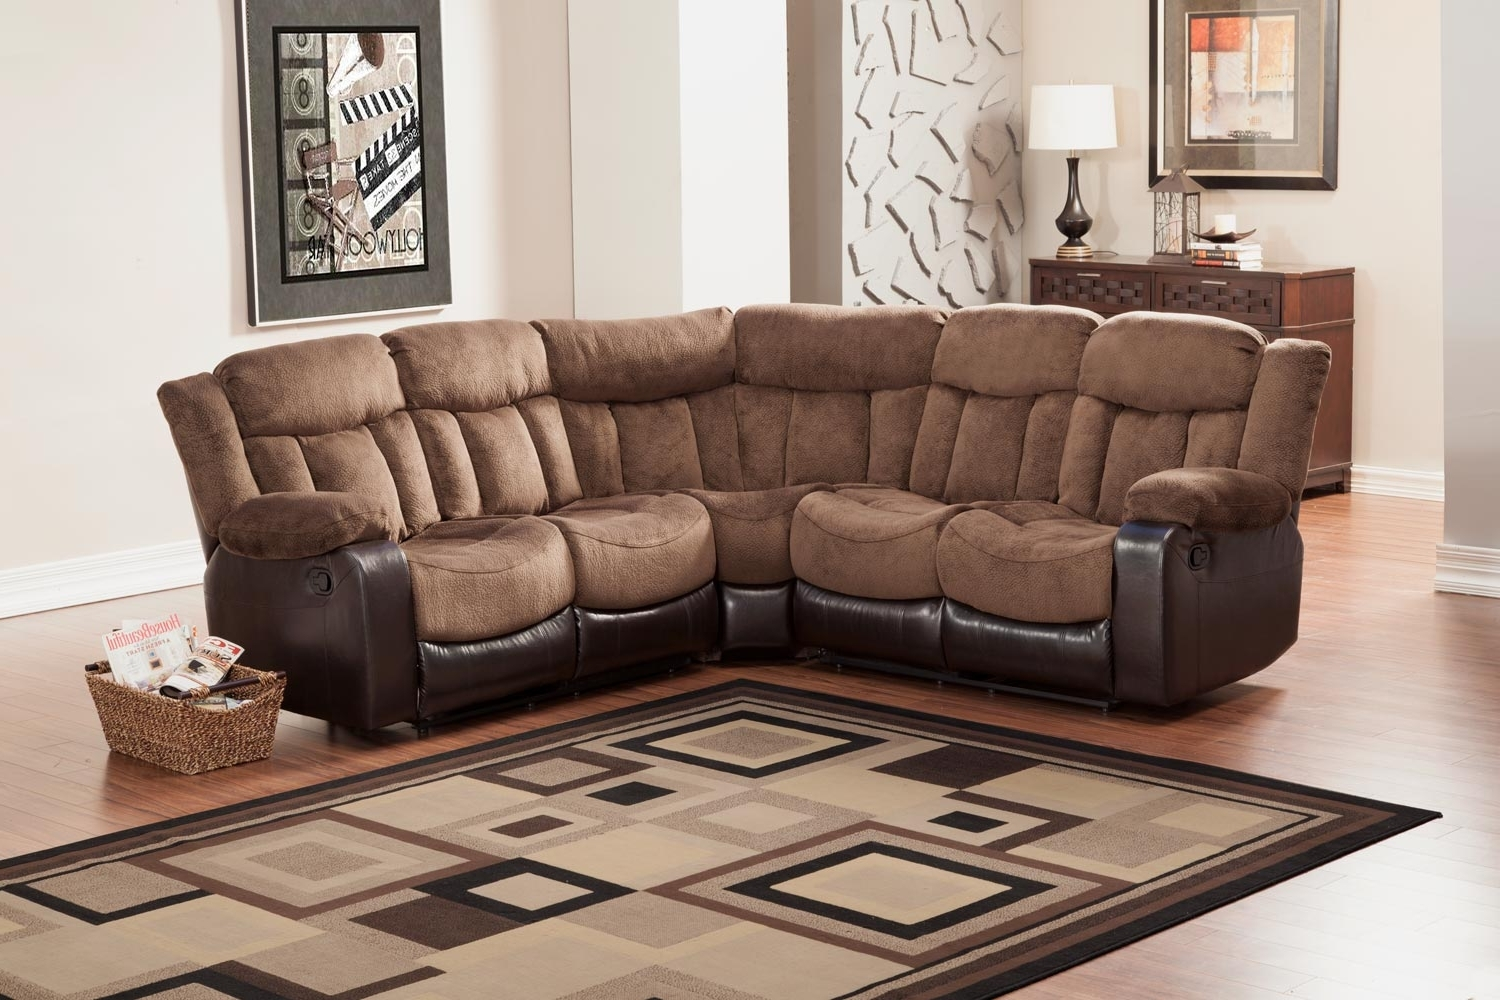 Homelegance Vera Reclining Sectional Sofa – Chocolate – Textured With Regard To Newest Reclining Sectional Sofas (View 17 of 20)